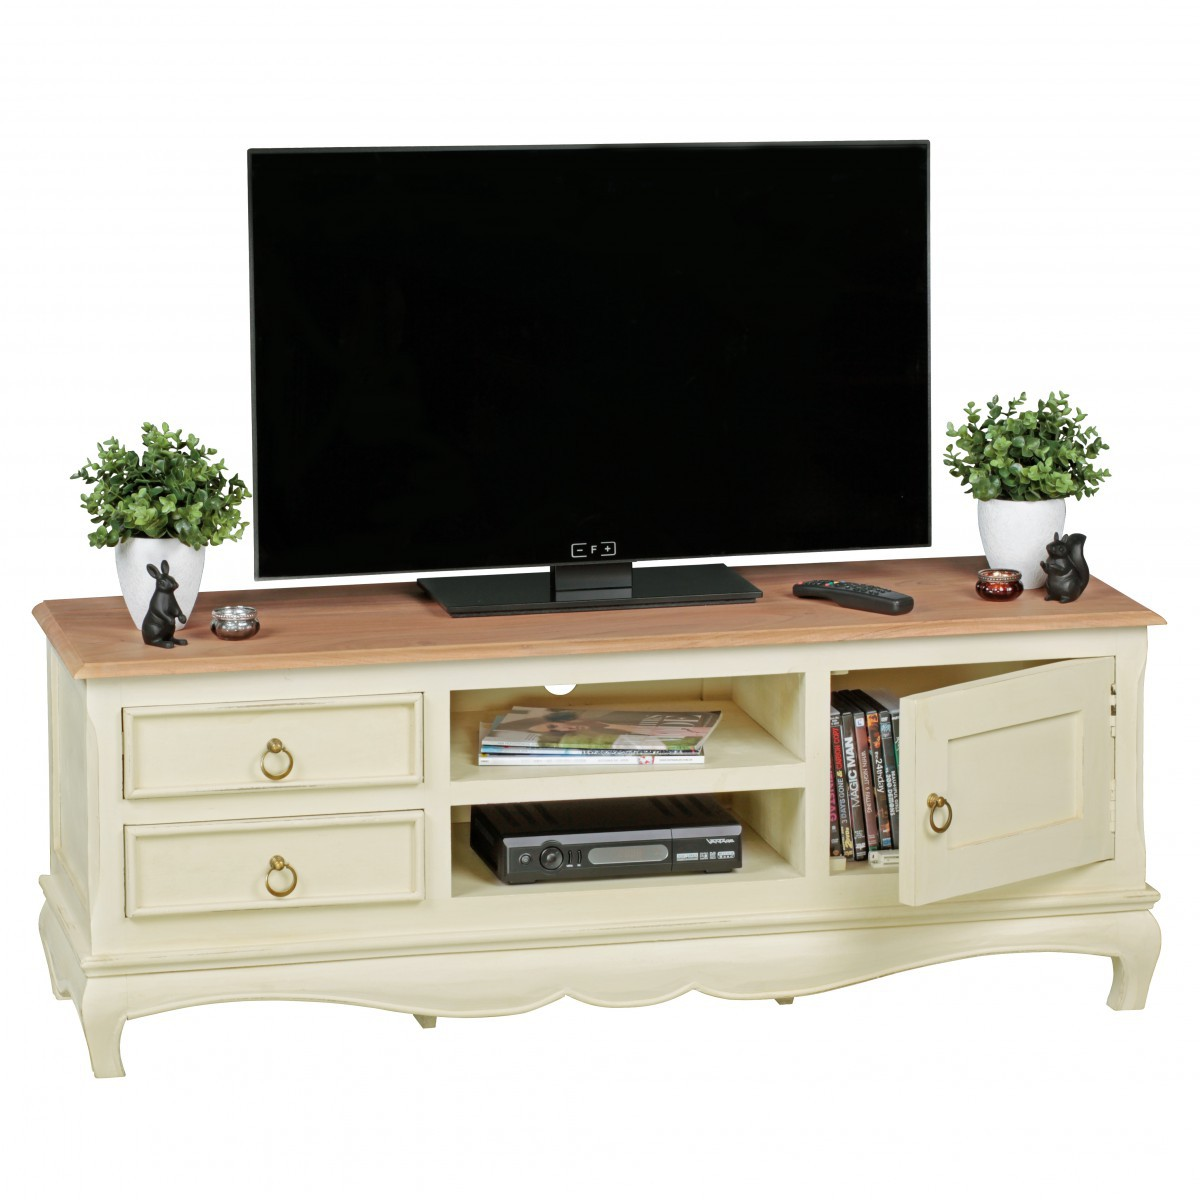 finebuy tv lowboard 135 cm massivholz akazie mango tv hifi regal landhaus fernsehtisch shabby. Black Bedroom Furniture Sets. Home Design Ideas